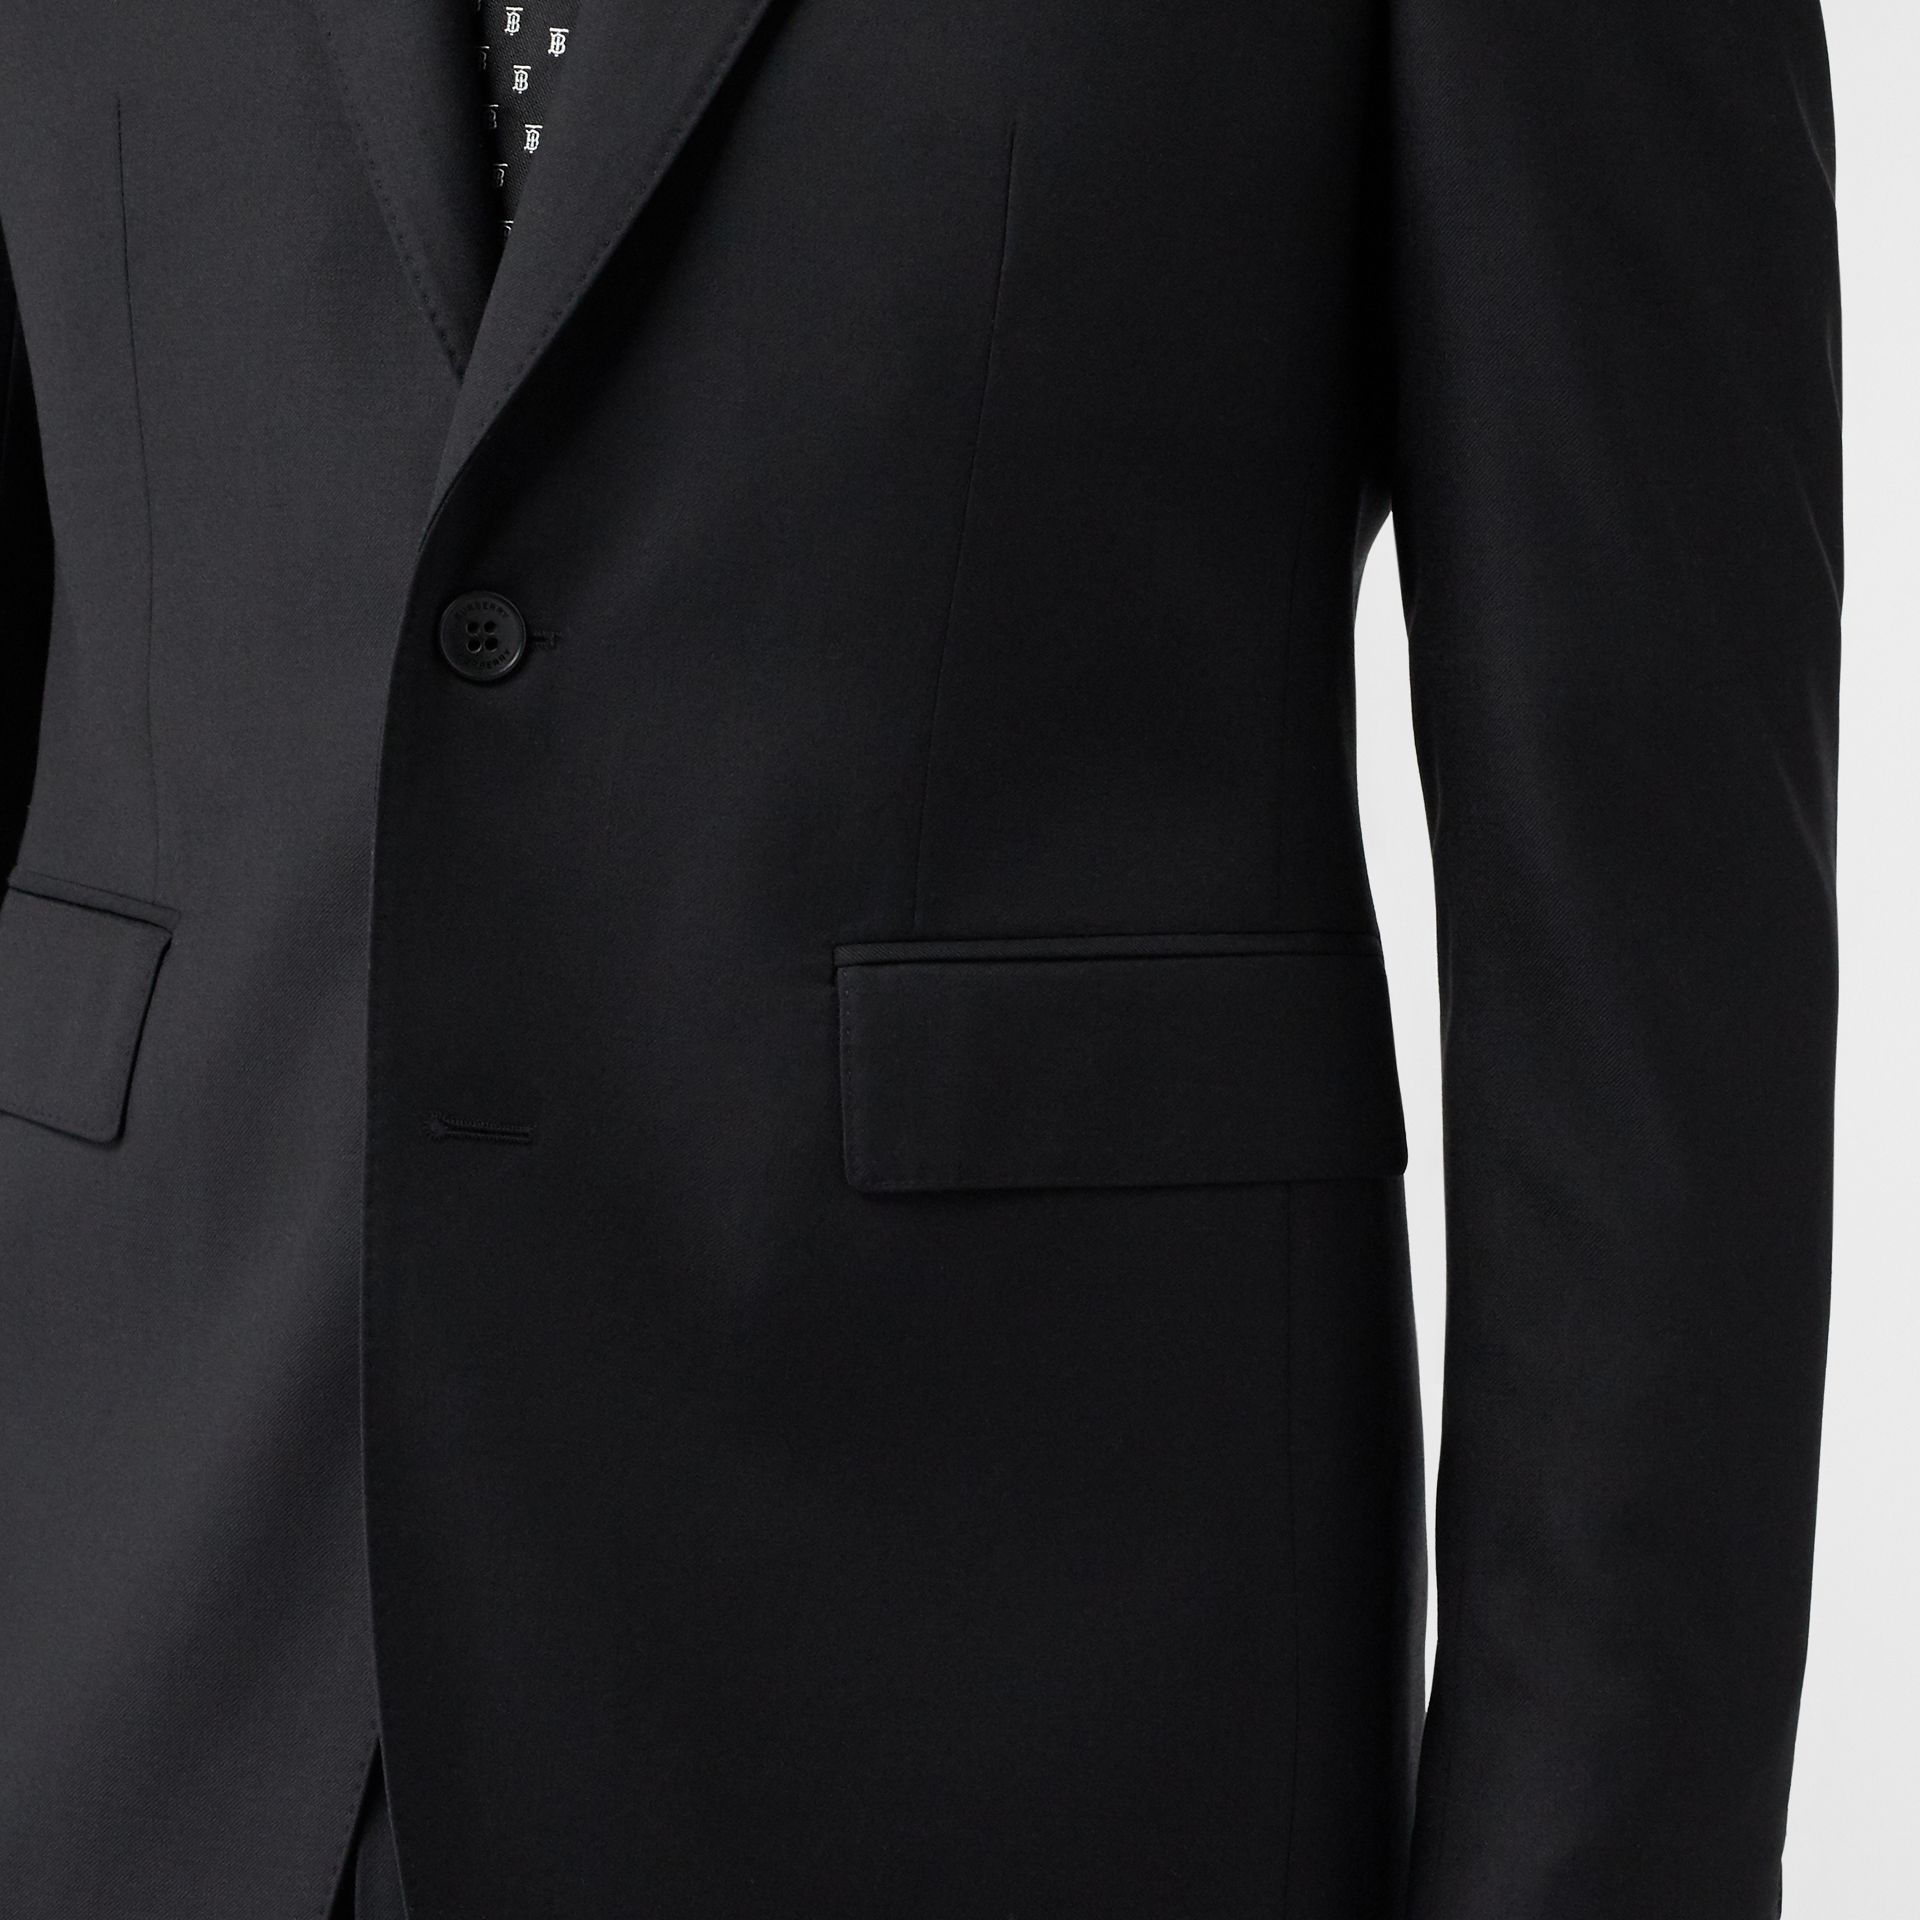 Classic Fit Wool Suit in Black - Men | Burberry - gallery image 4